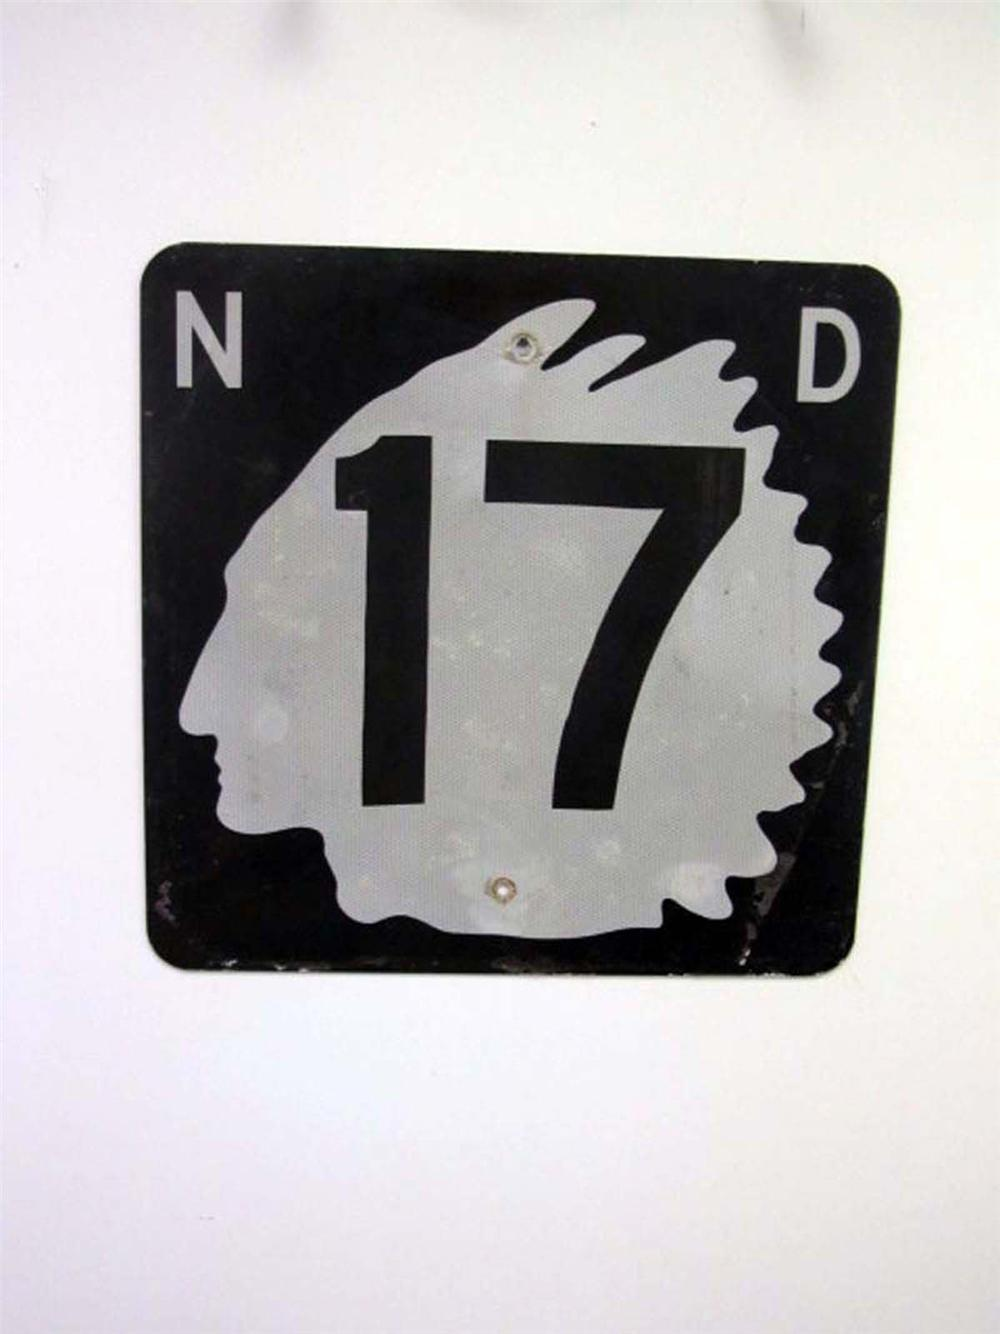 Fantastic vintage 1950s North Dakota Highway #17 metal road sign with Native American Chieftain logo. - Front 3/4 - 130831